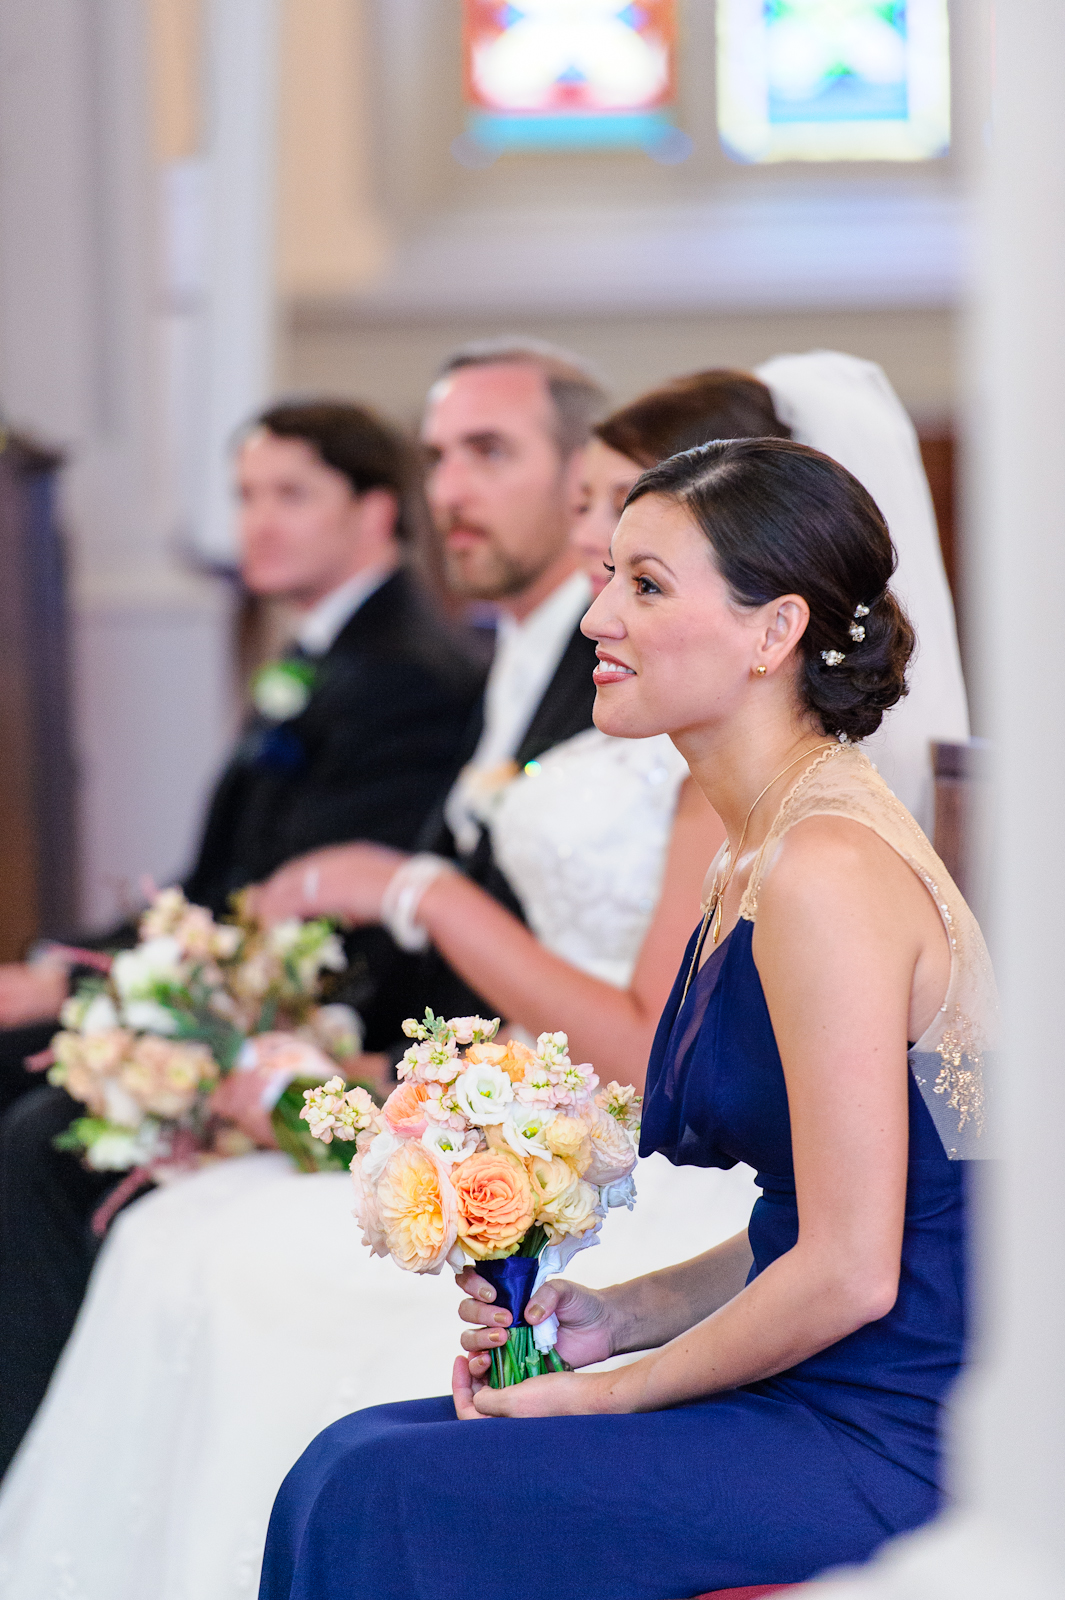 wedding photography dc photographer - district of columbia photography weddingphoto 2012_-25.jpg